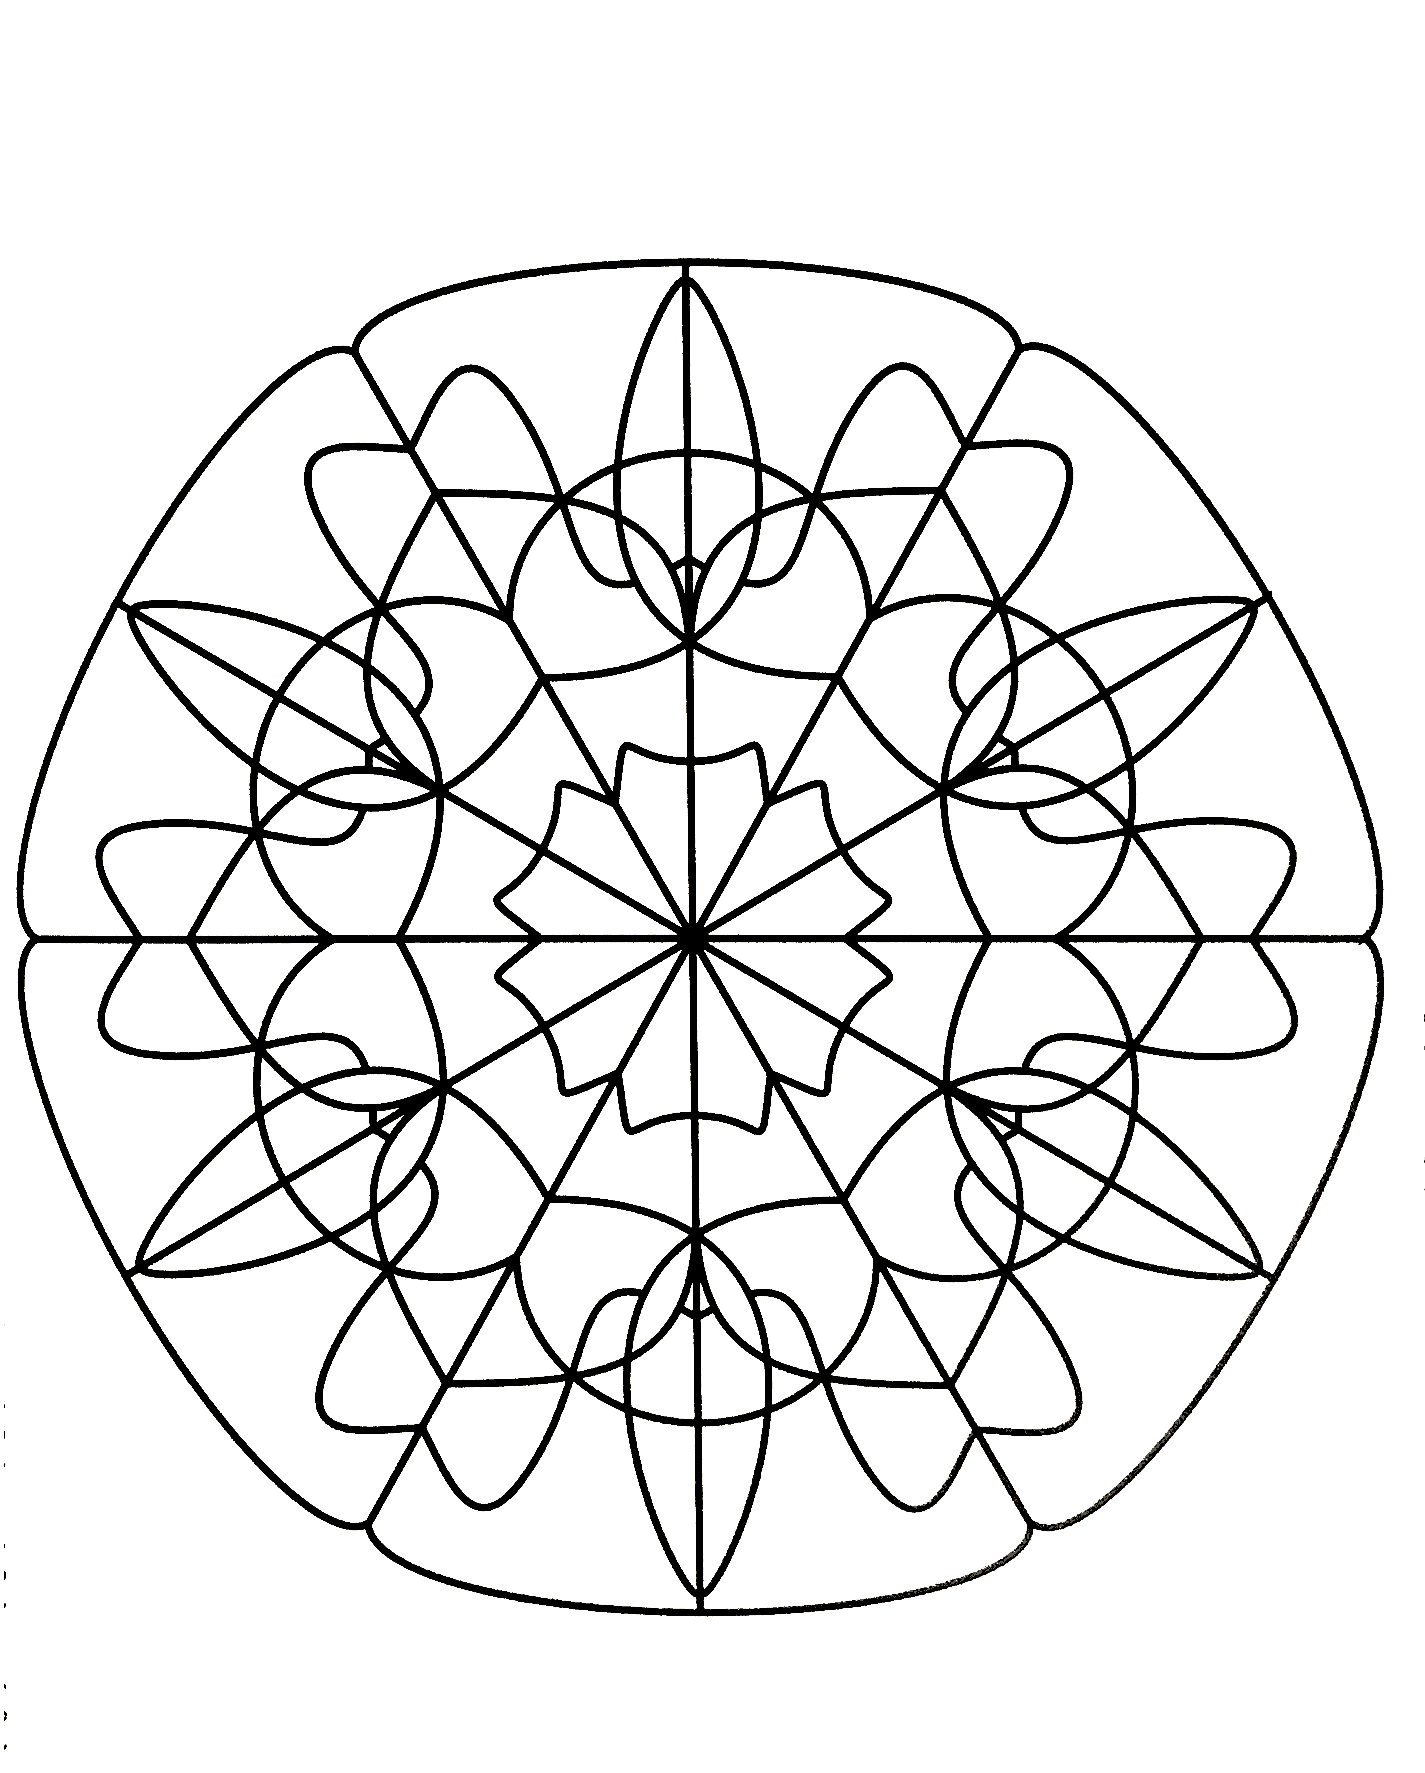 simple mandalas to color simple mandala 76 mandalas coloring pages for kids to mandalas to simple color